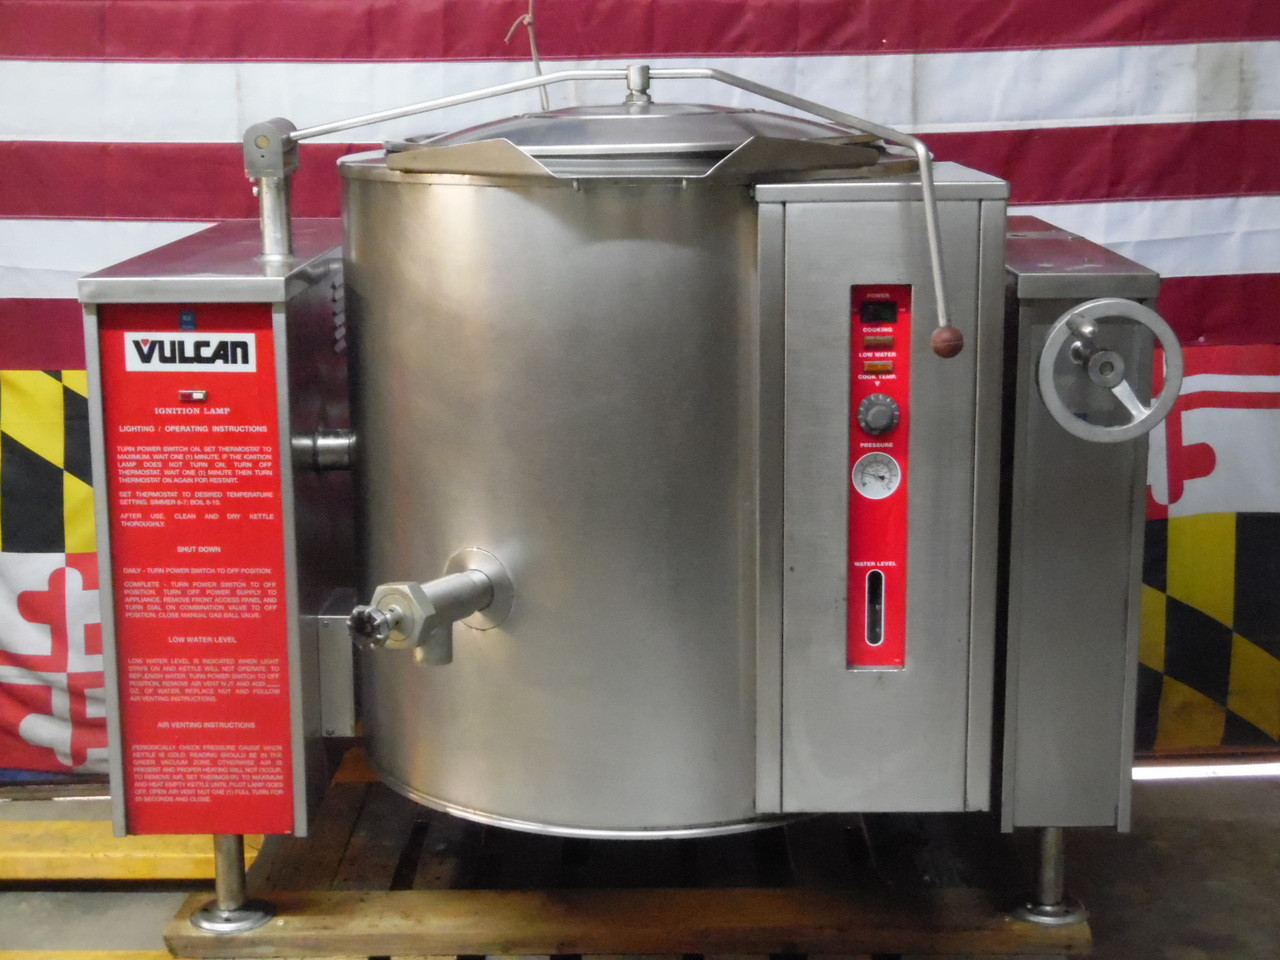 Vulcan Blodgett Nat Gas 40 Gallon Tilting Steam Kettle VGLT40